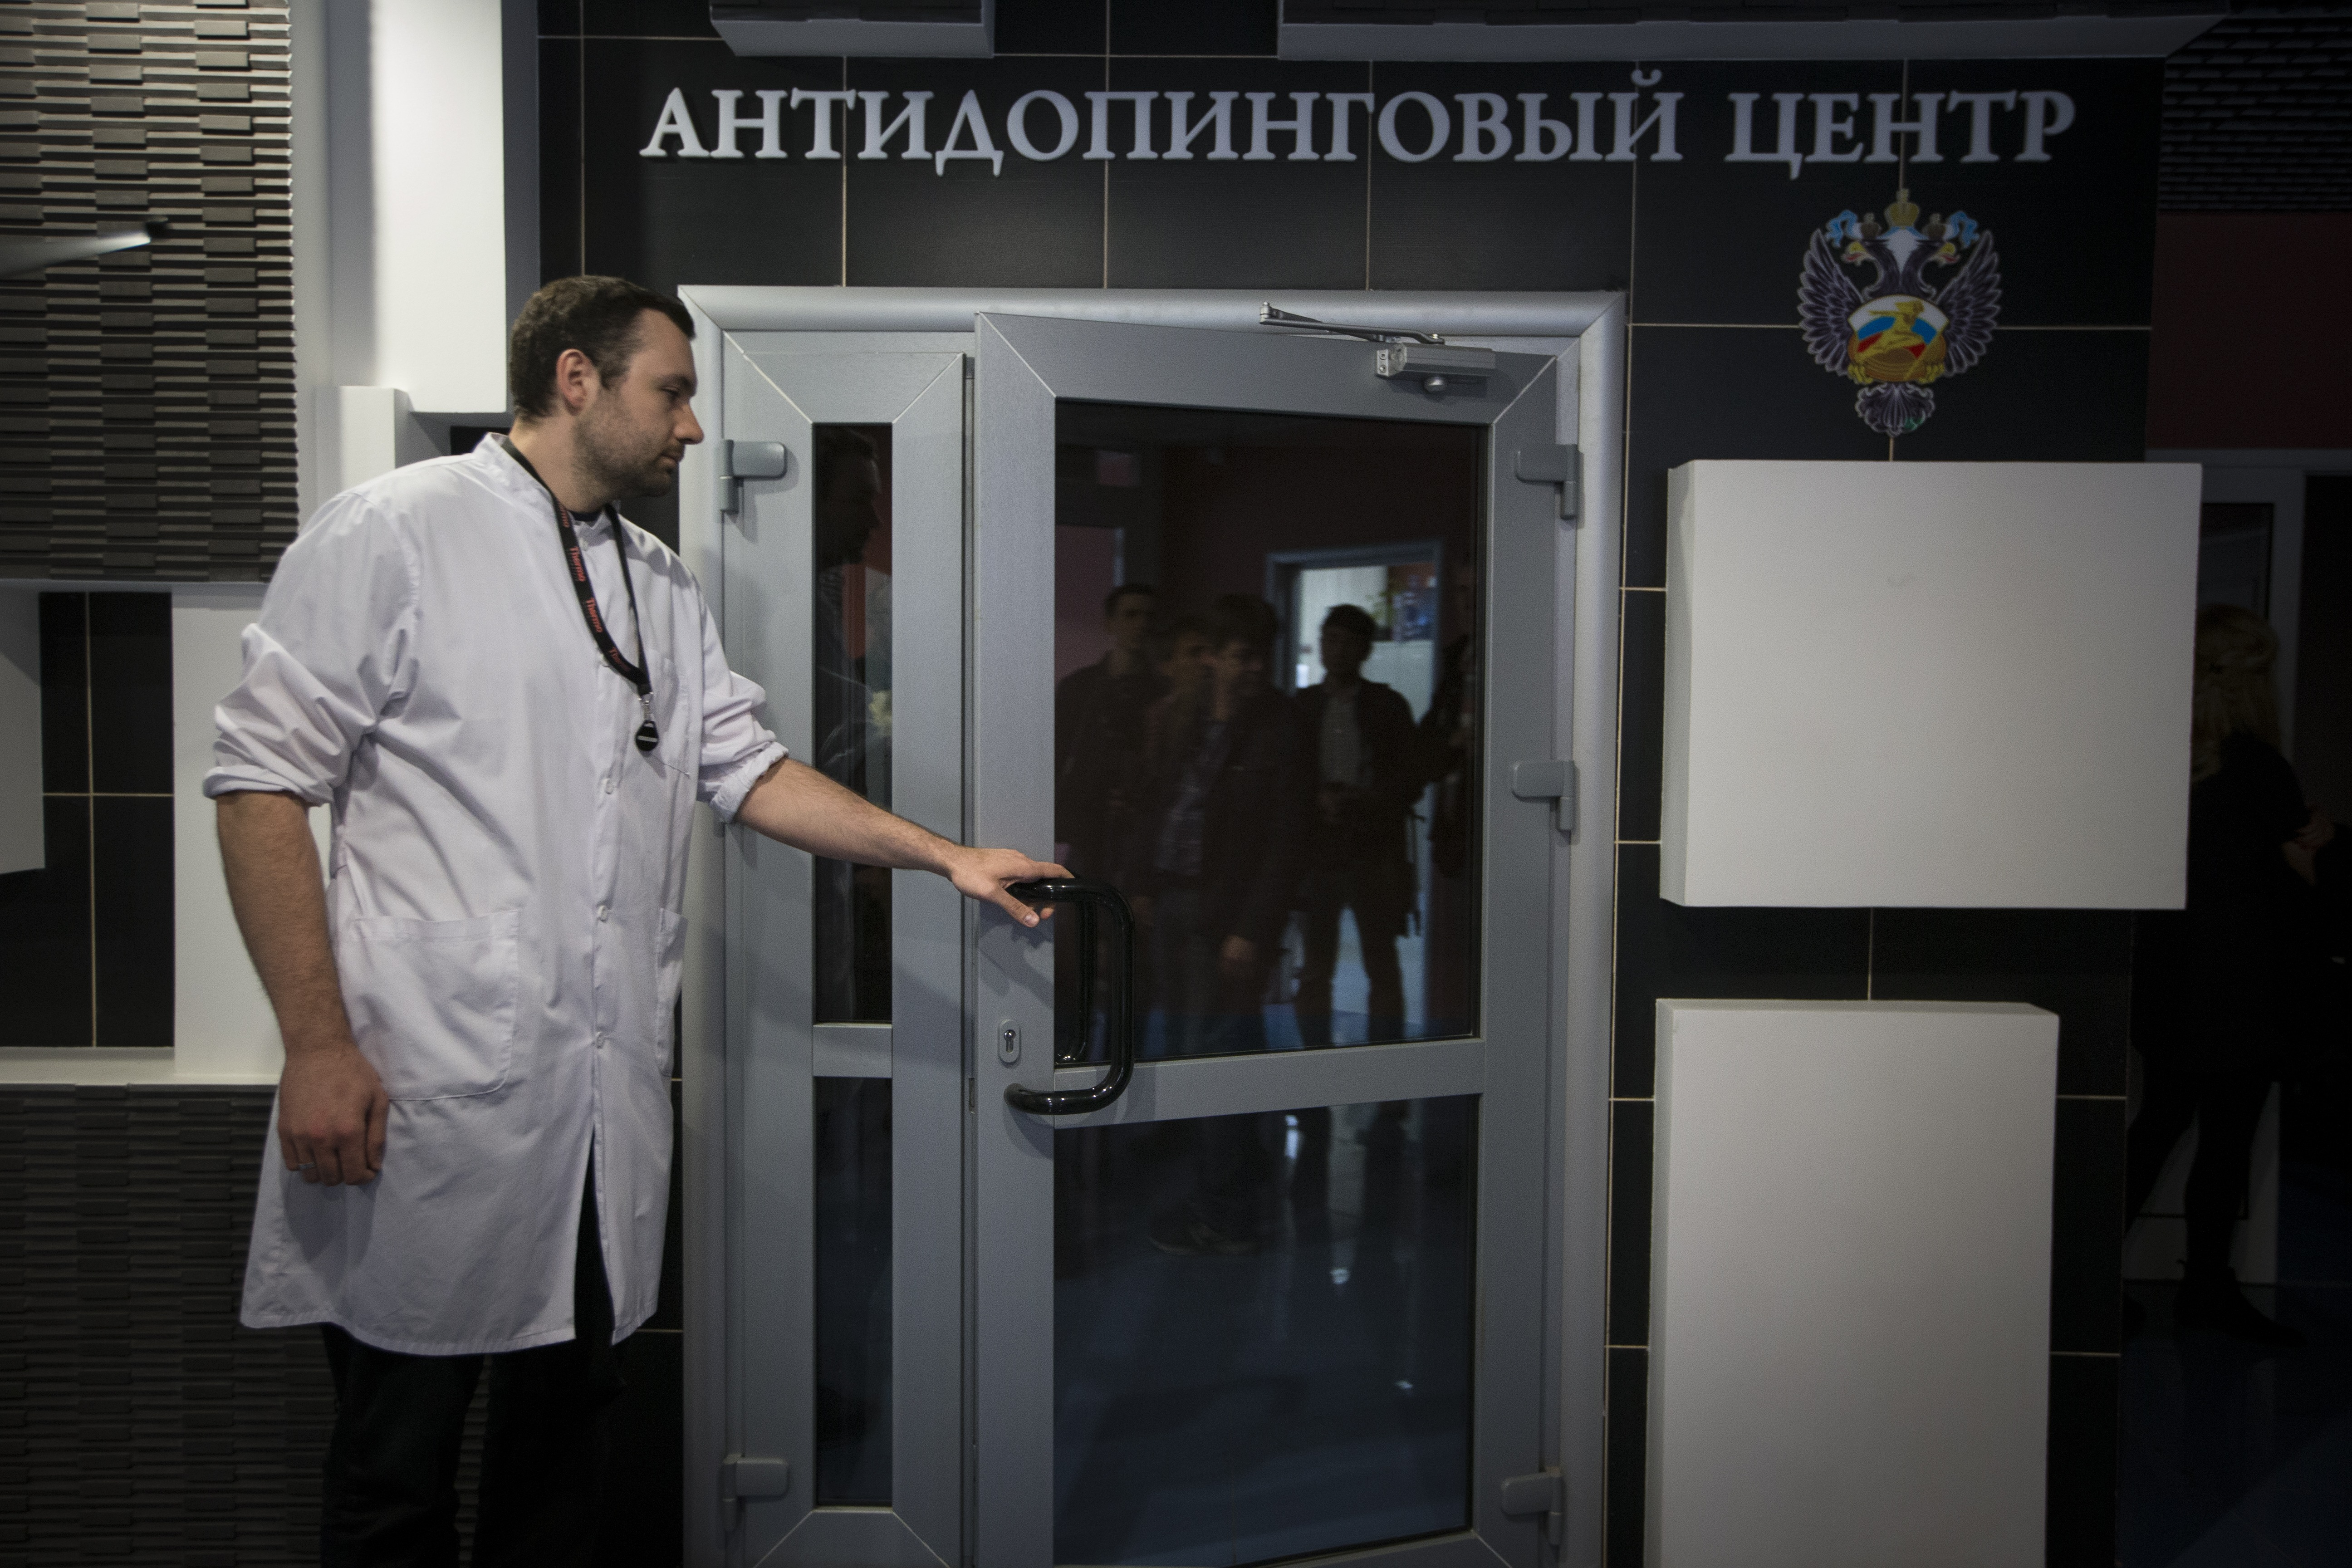 Grigory Dudko opens a door for journalists during his visit to Russia's national drug-testing laboratory  in Moscow, Russia, Tuesday, May 24, 2016. The Russians have been accused of state-sponsored doping at the 2014 Sochi Olympics, and the IOC has asked